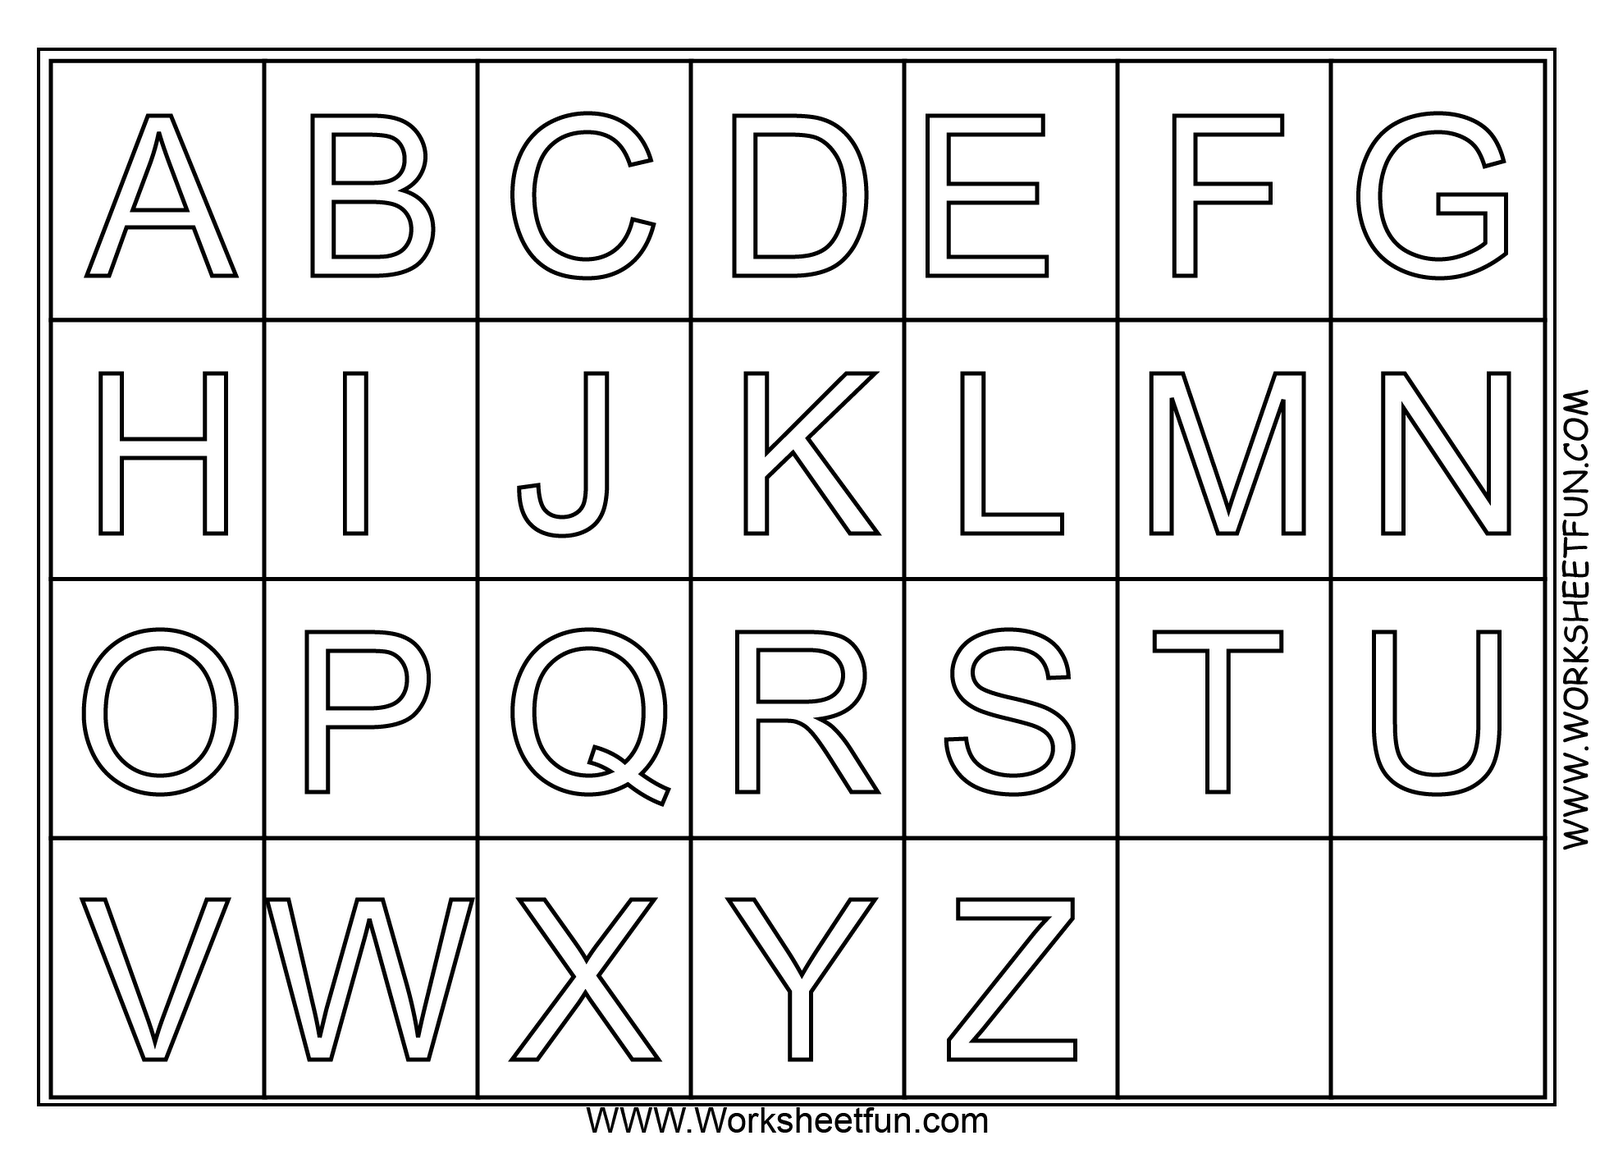 Worksheets Alphabet For Preschoolers a z alphabet coloring pages download and print for free pre k free